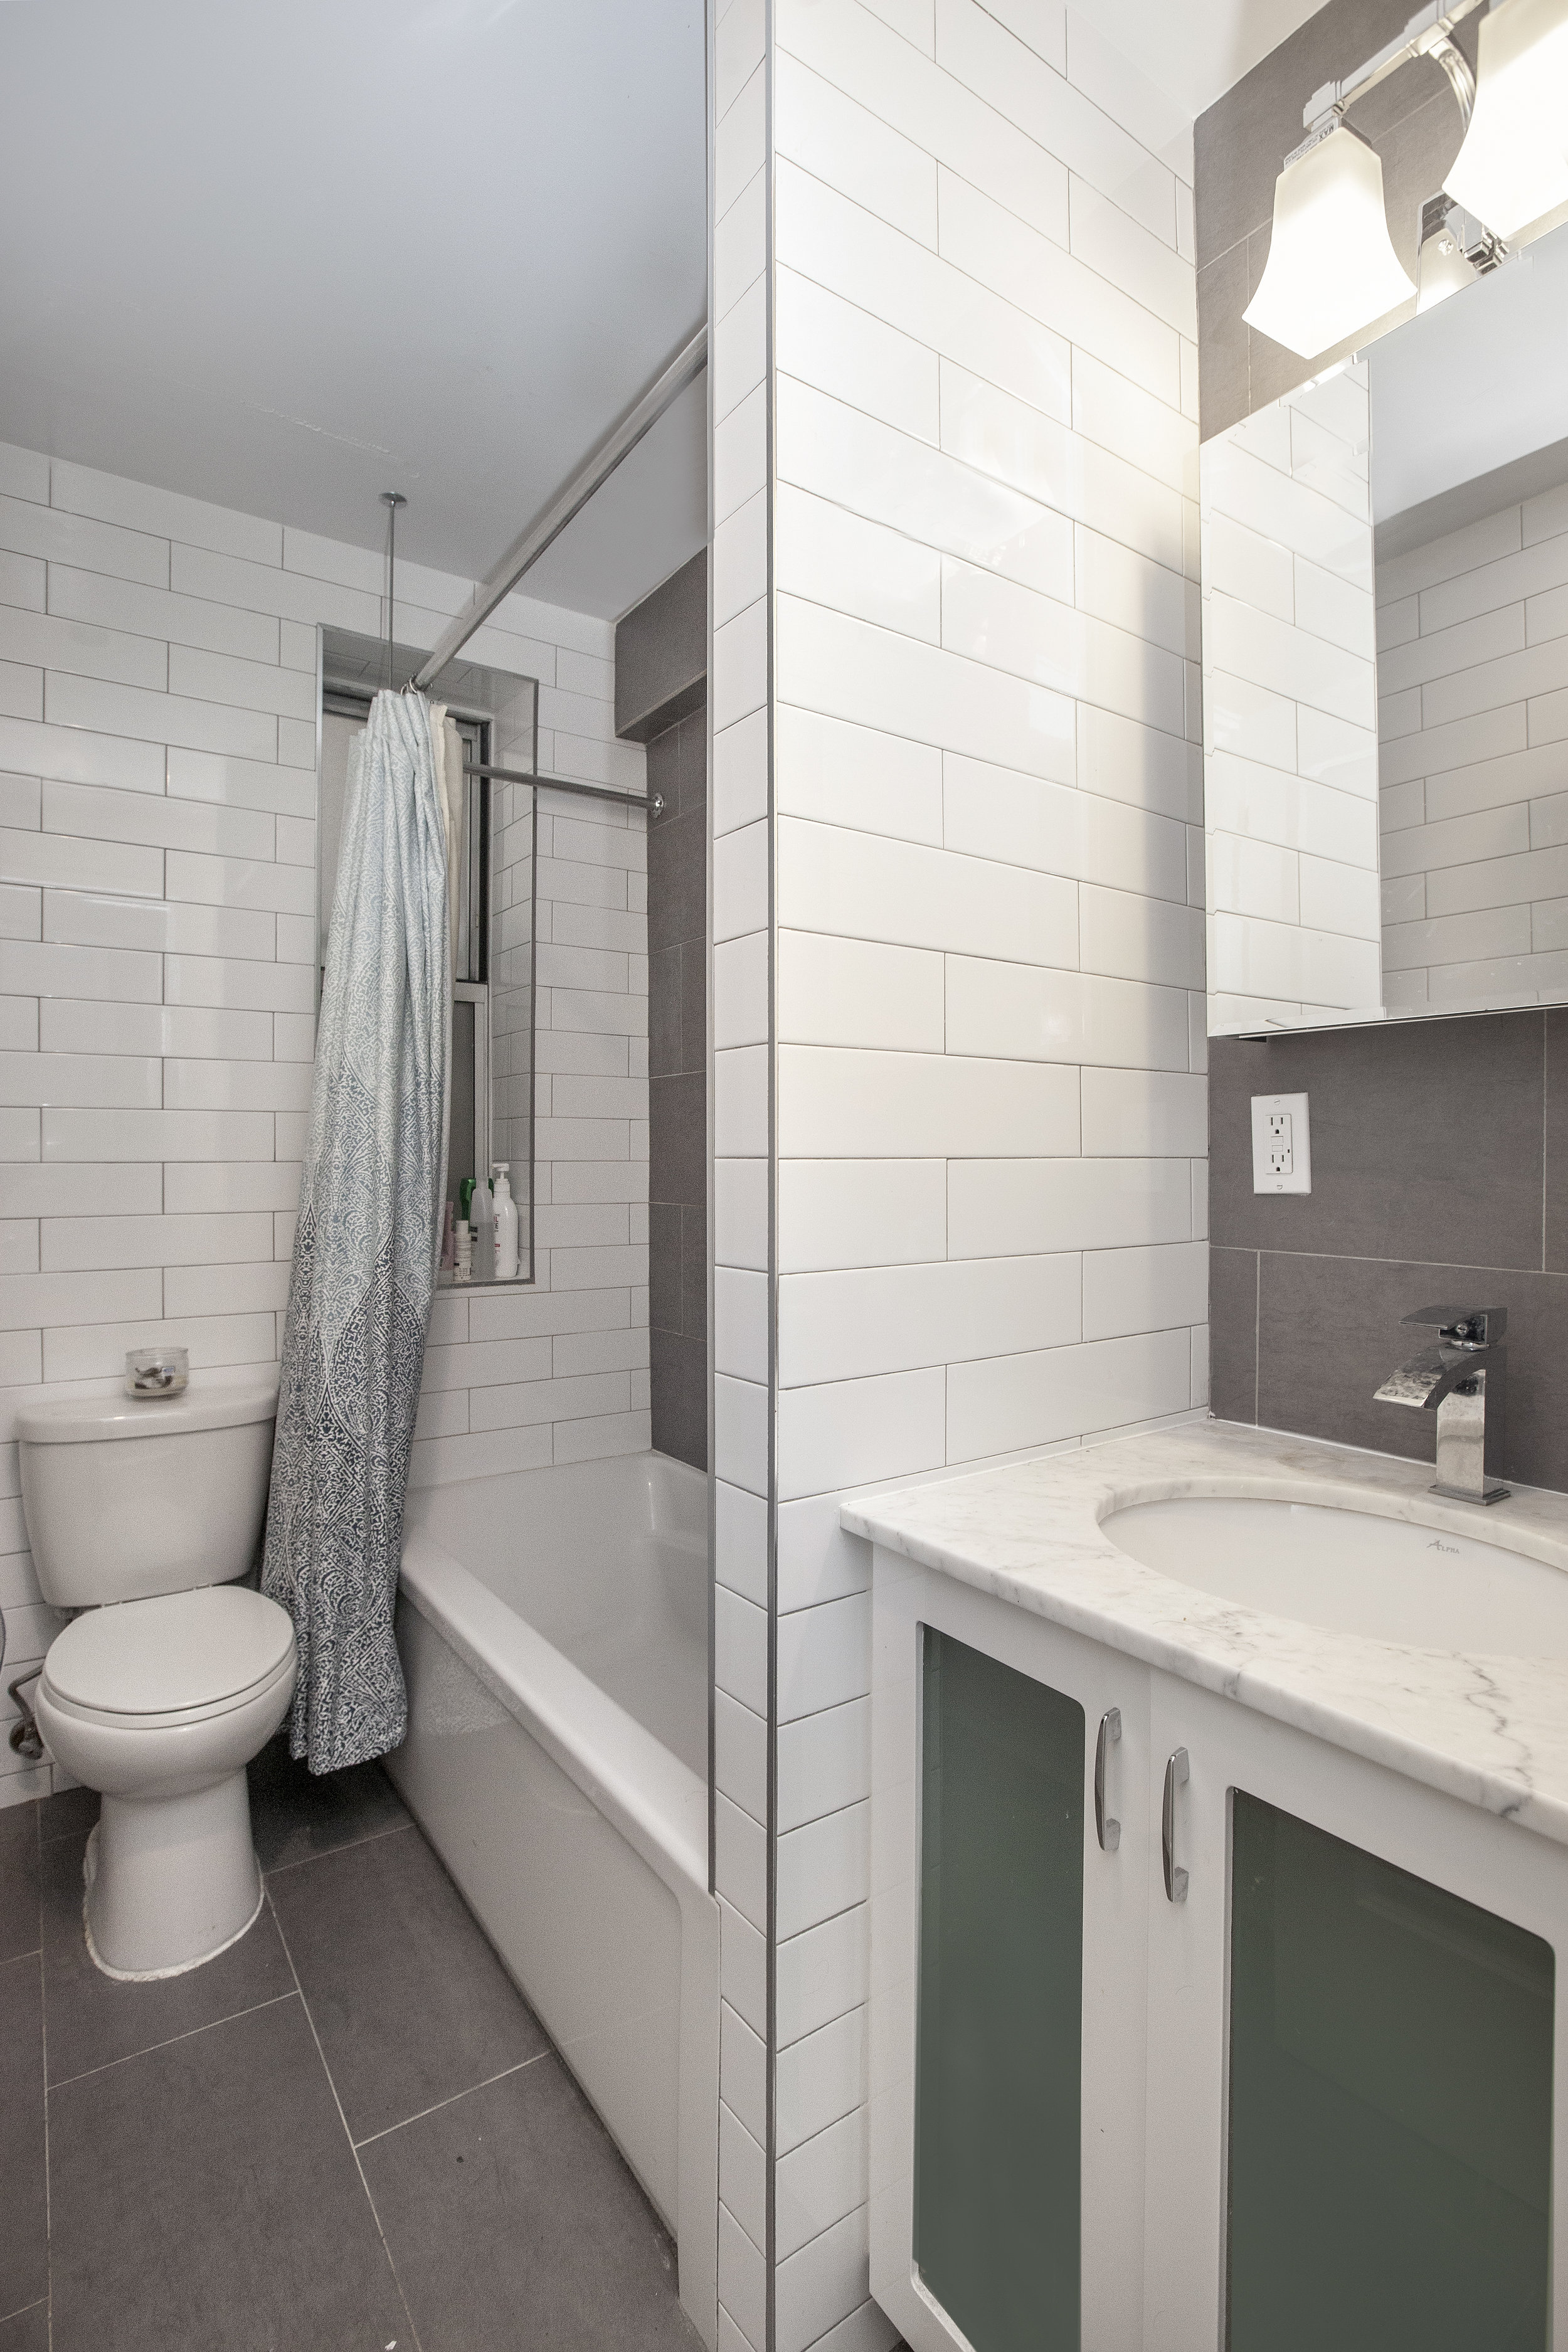 Riverside_Drive_West_156-08_1A_Bathroom.jpg